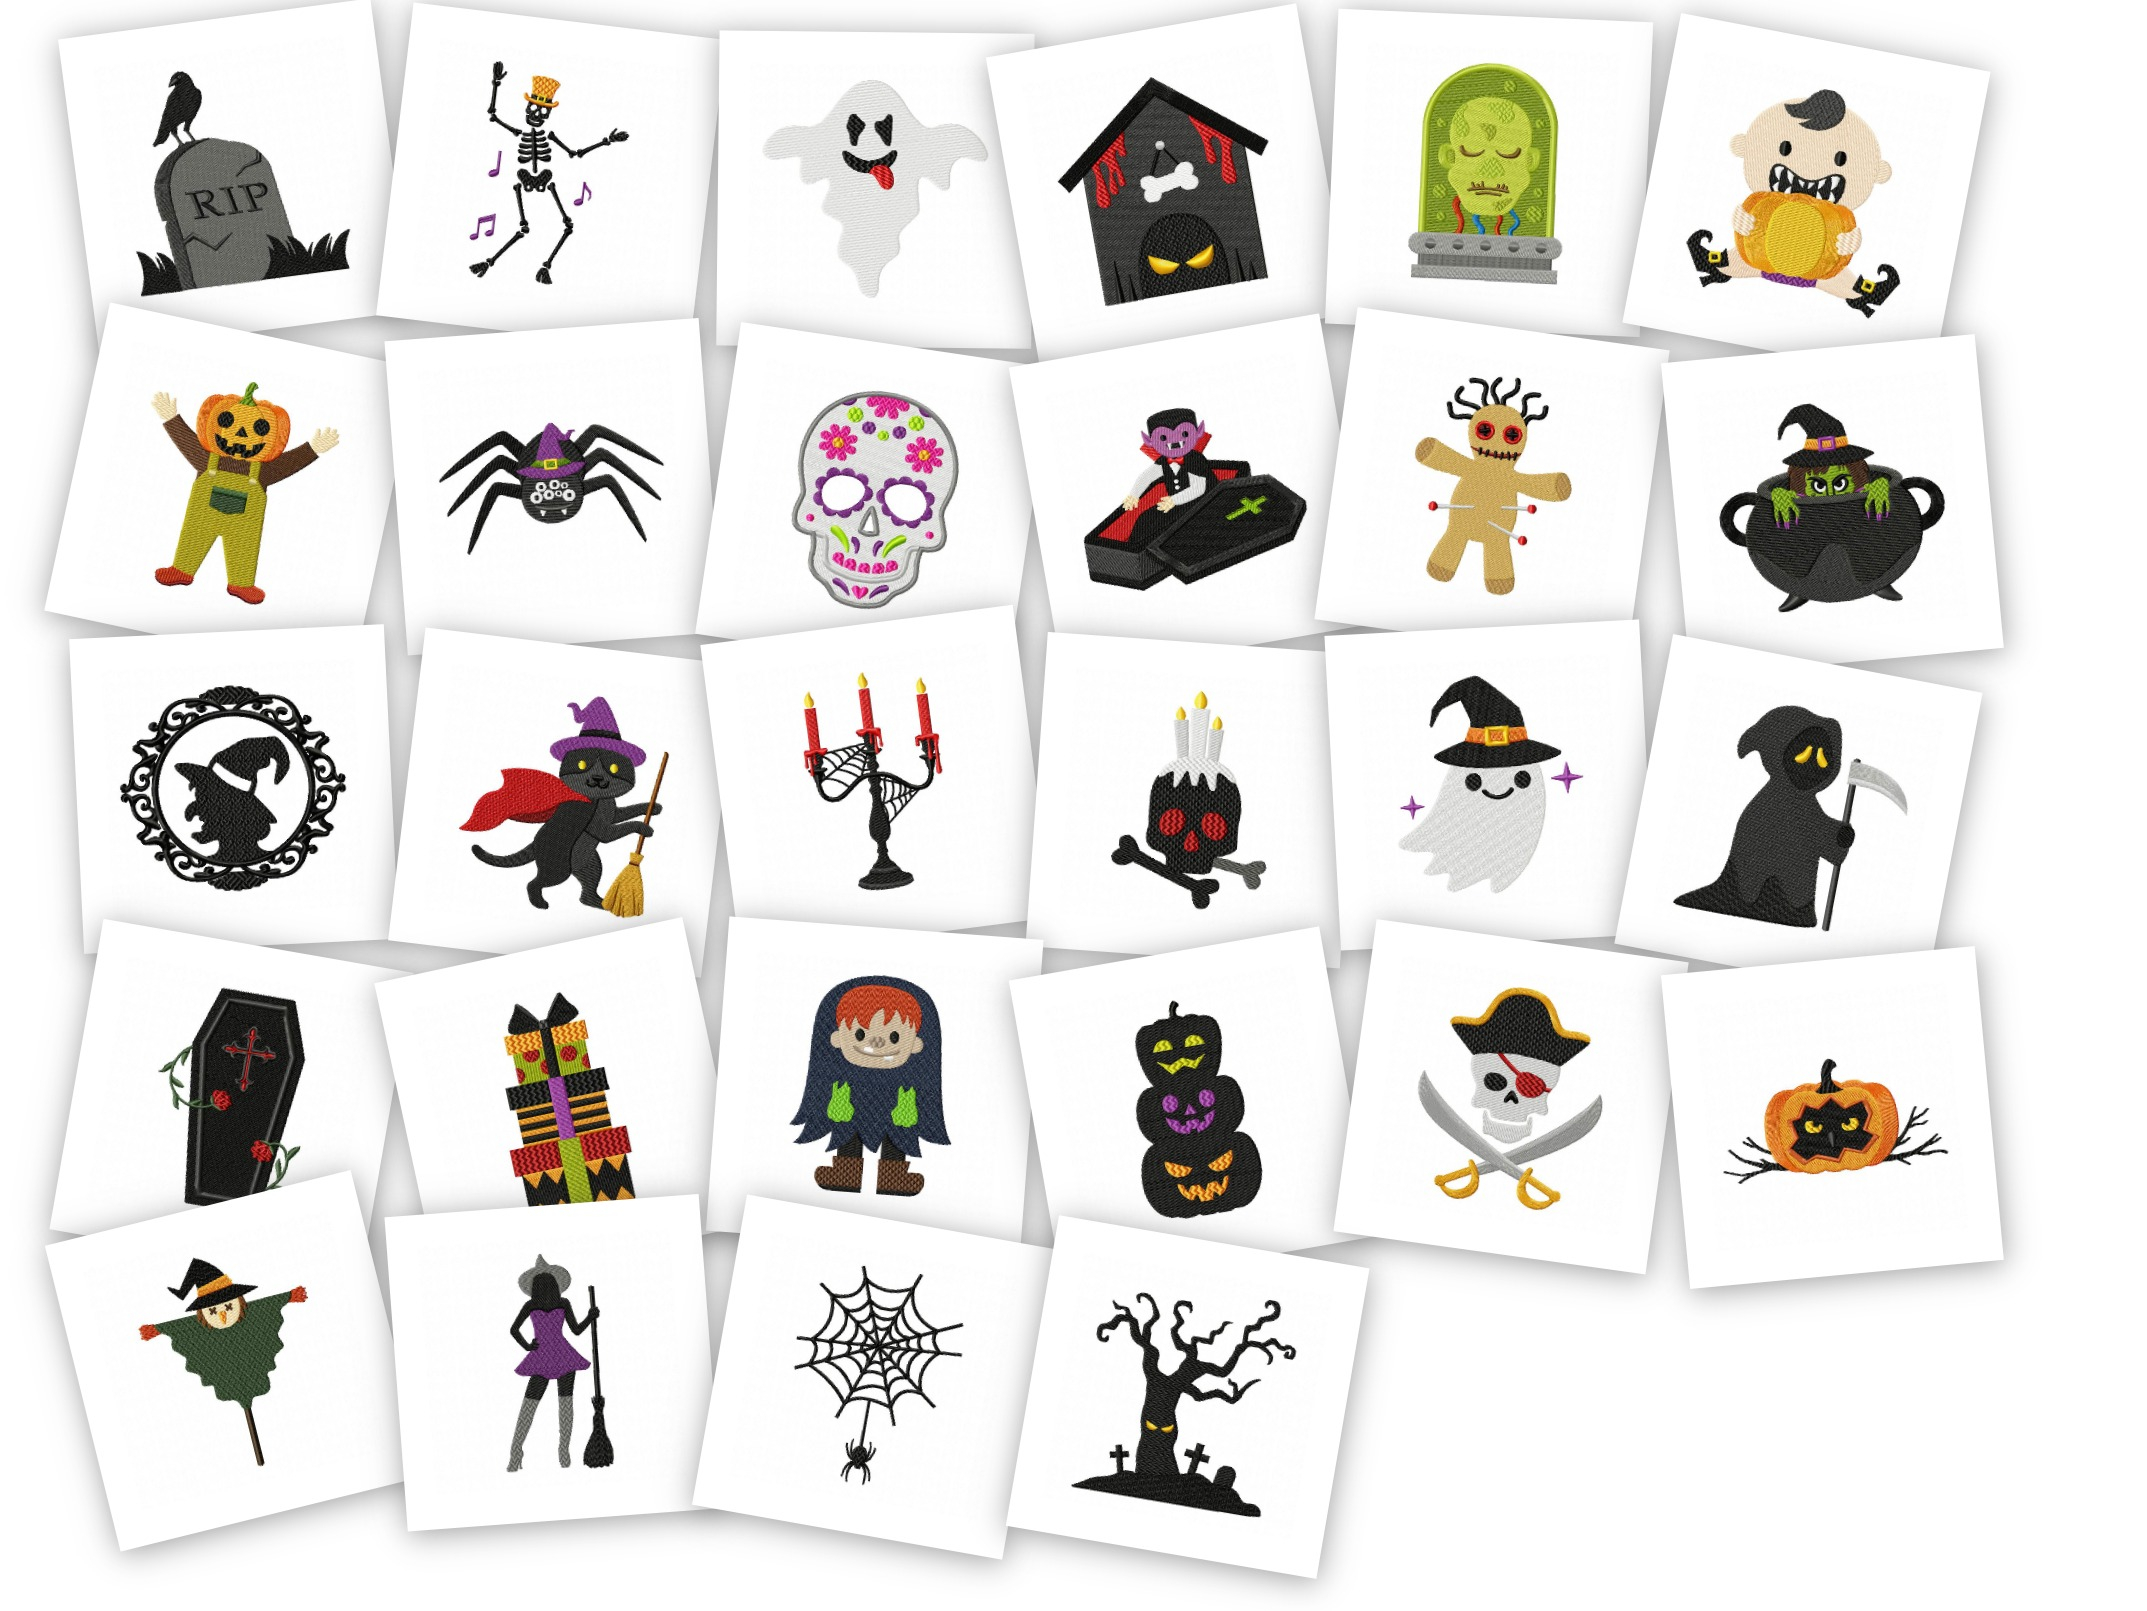 Cute Embroidery Patterns Halloween Spooky Cute Embroidery Pack 28 Designs Included